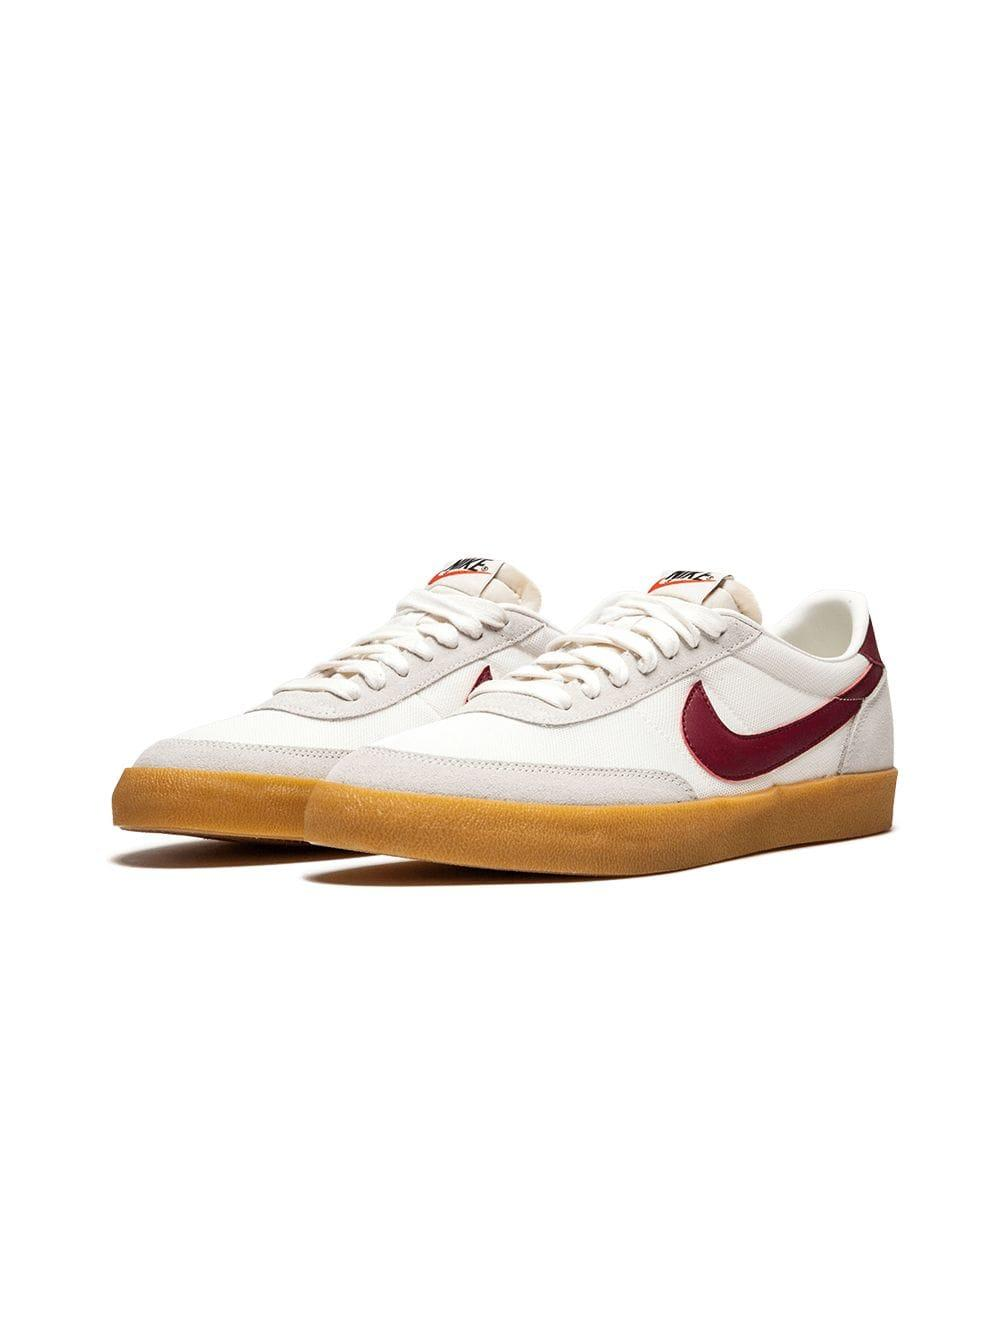 Nike - Multicolor Killshot Vulc Sneakers for Men - Lyst. View fullscreen 5f1e6074c